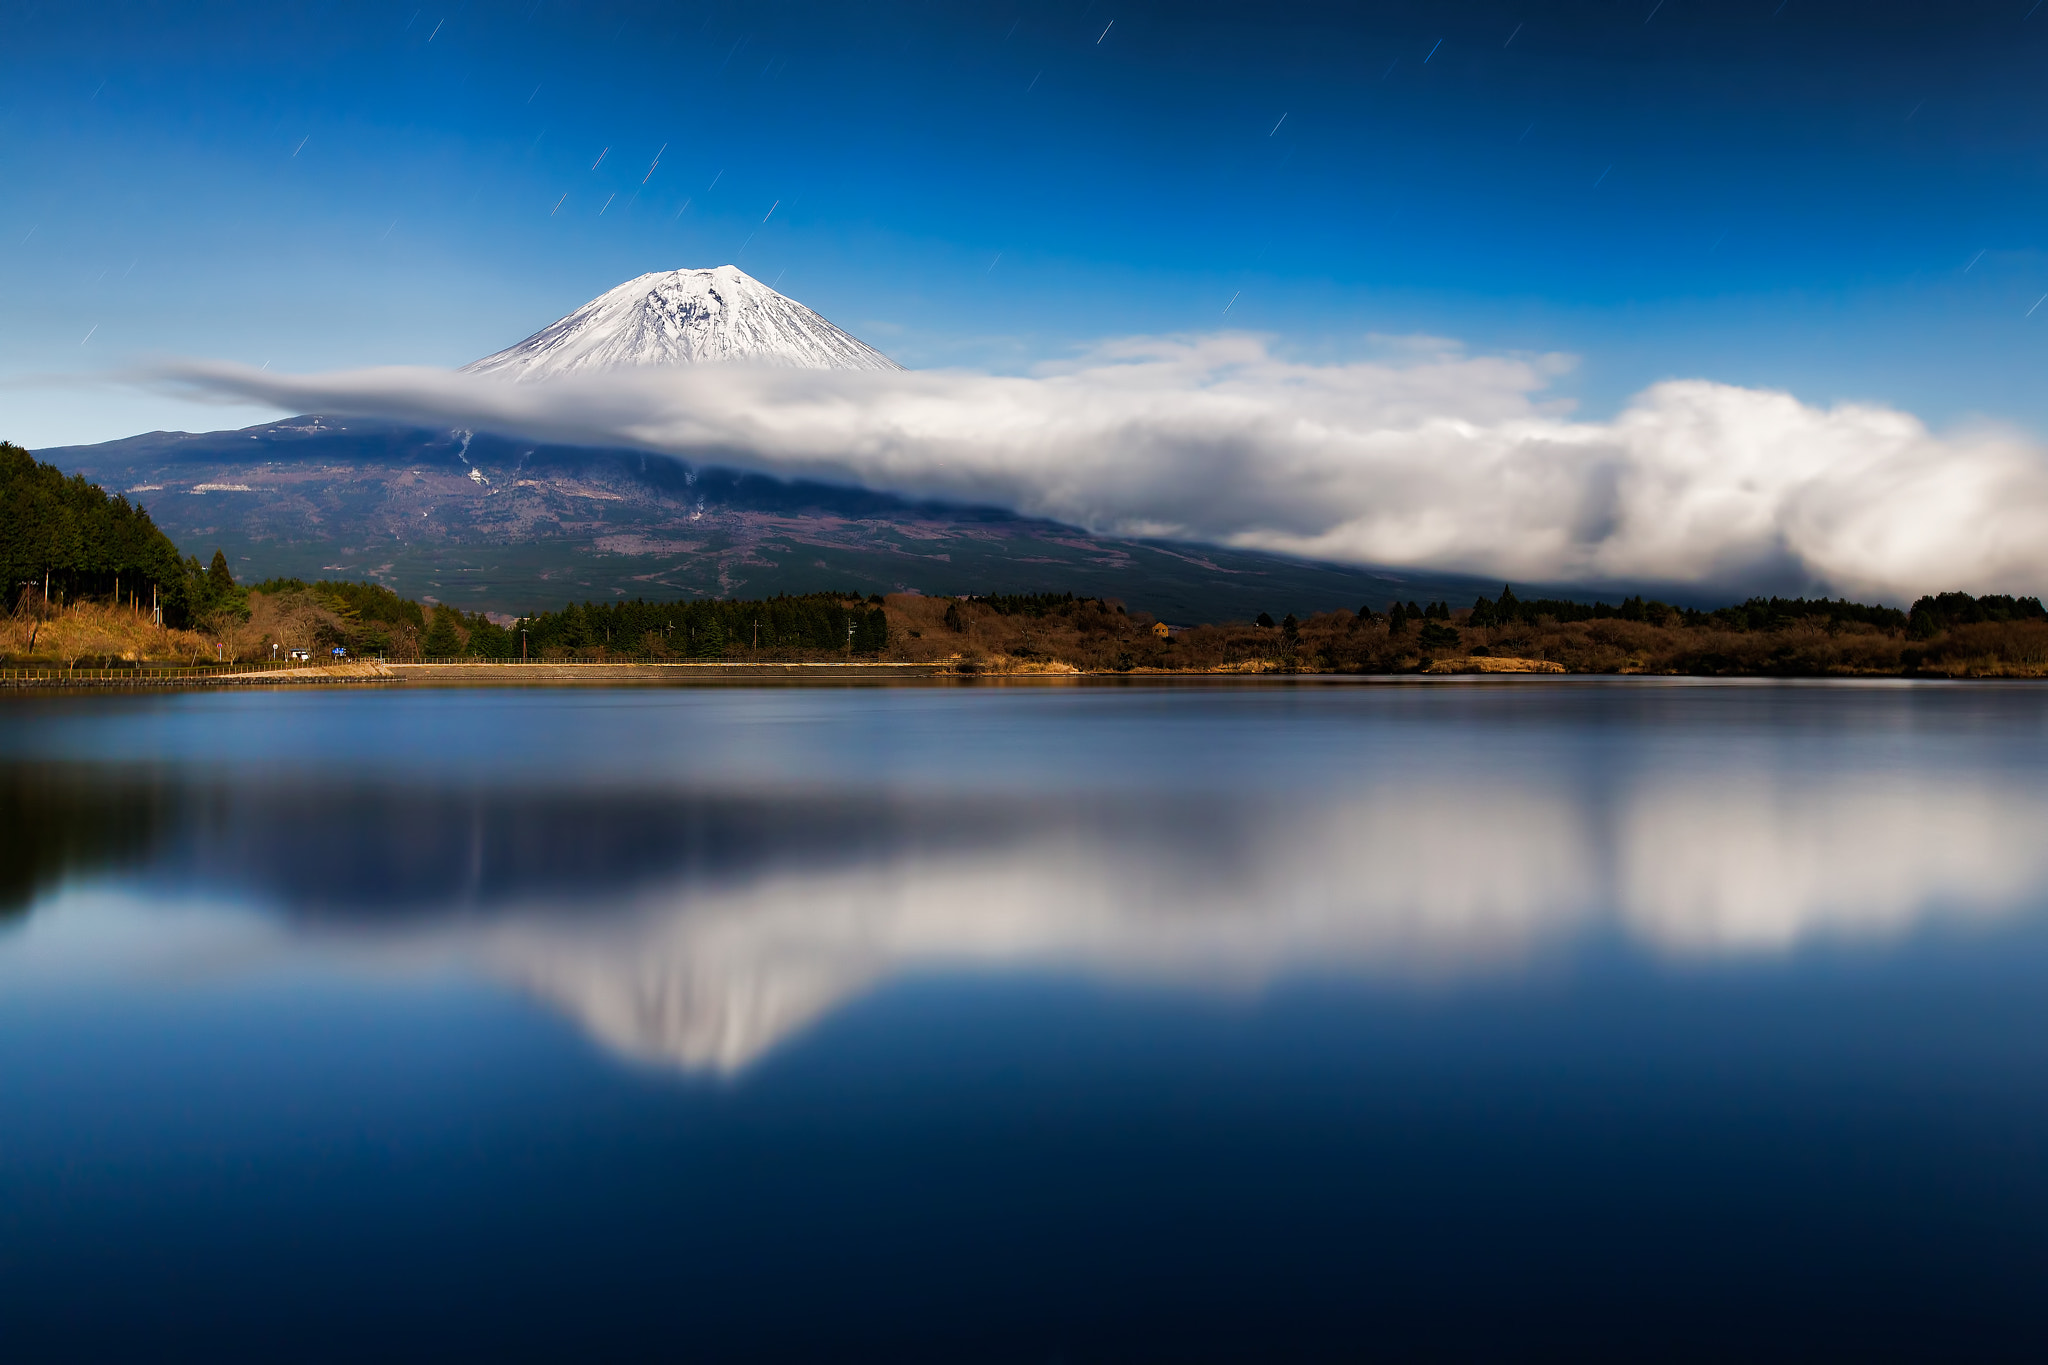 Photograph Mt.Fuji and cloud in the night by MIYAMOTO Y on 500px